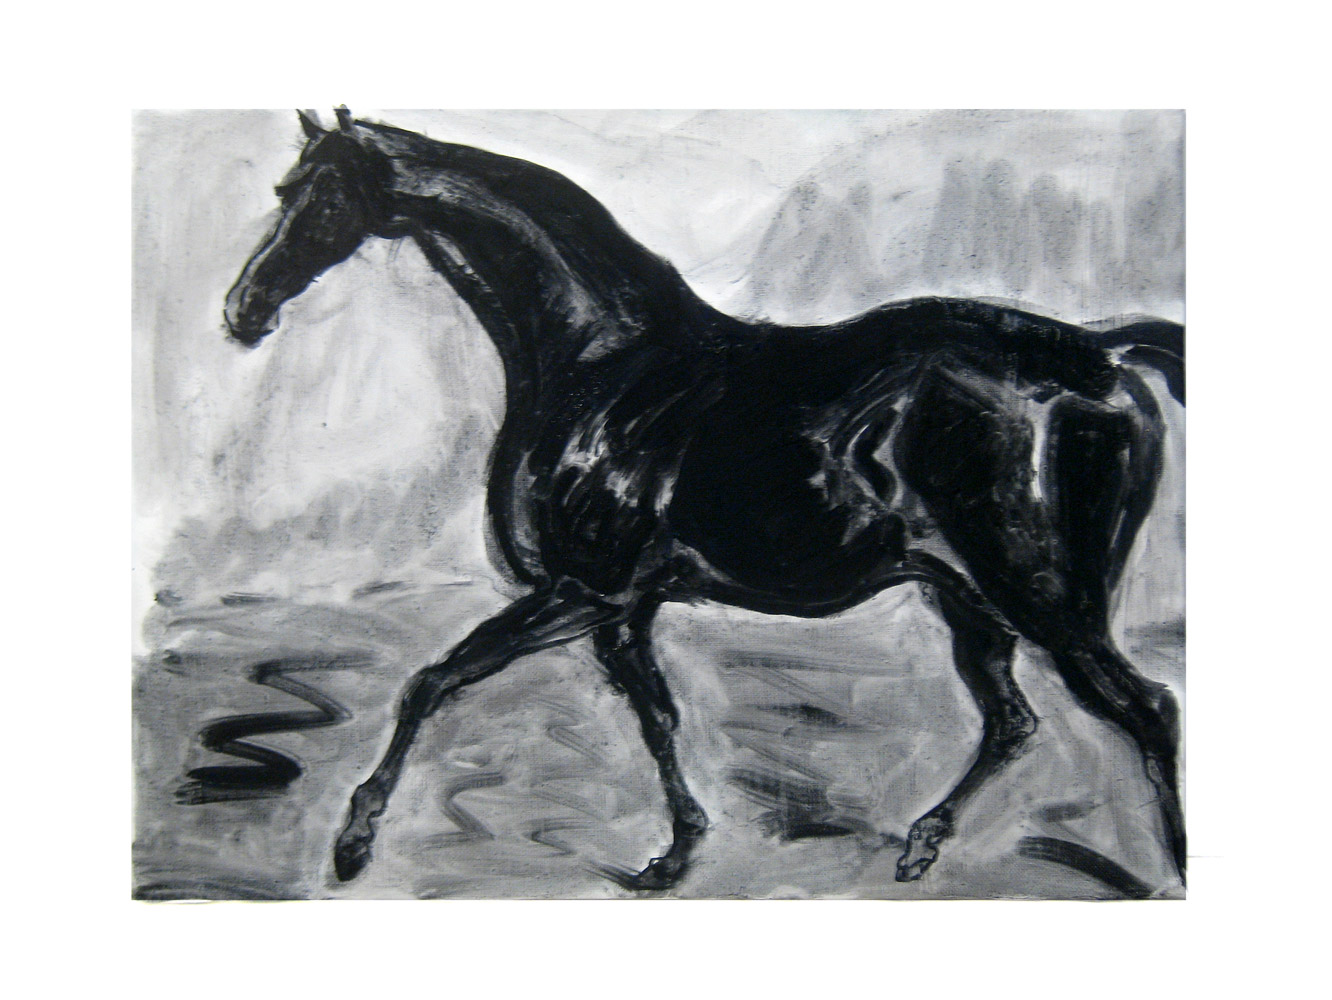 A Horse    Oil on wood panel, 2012